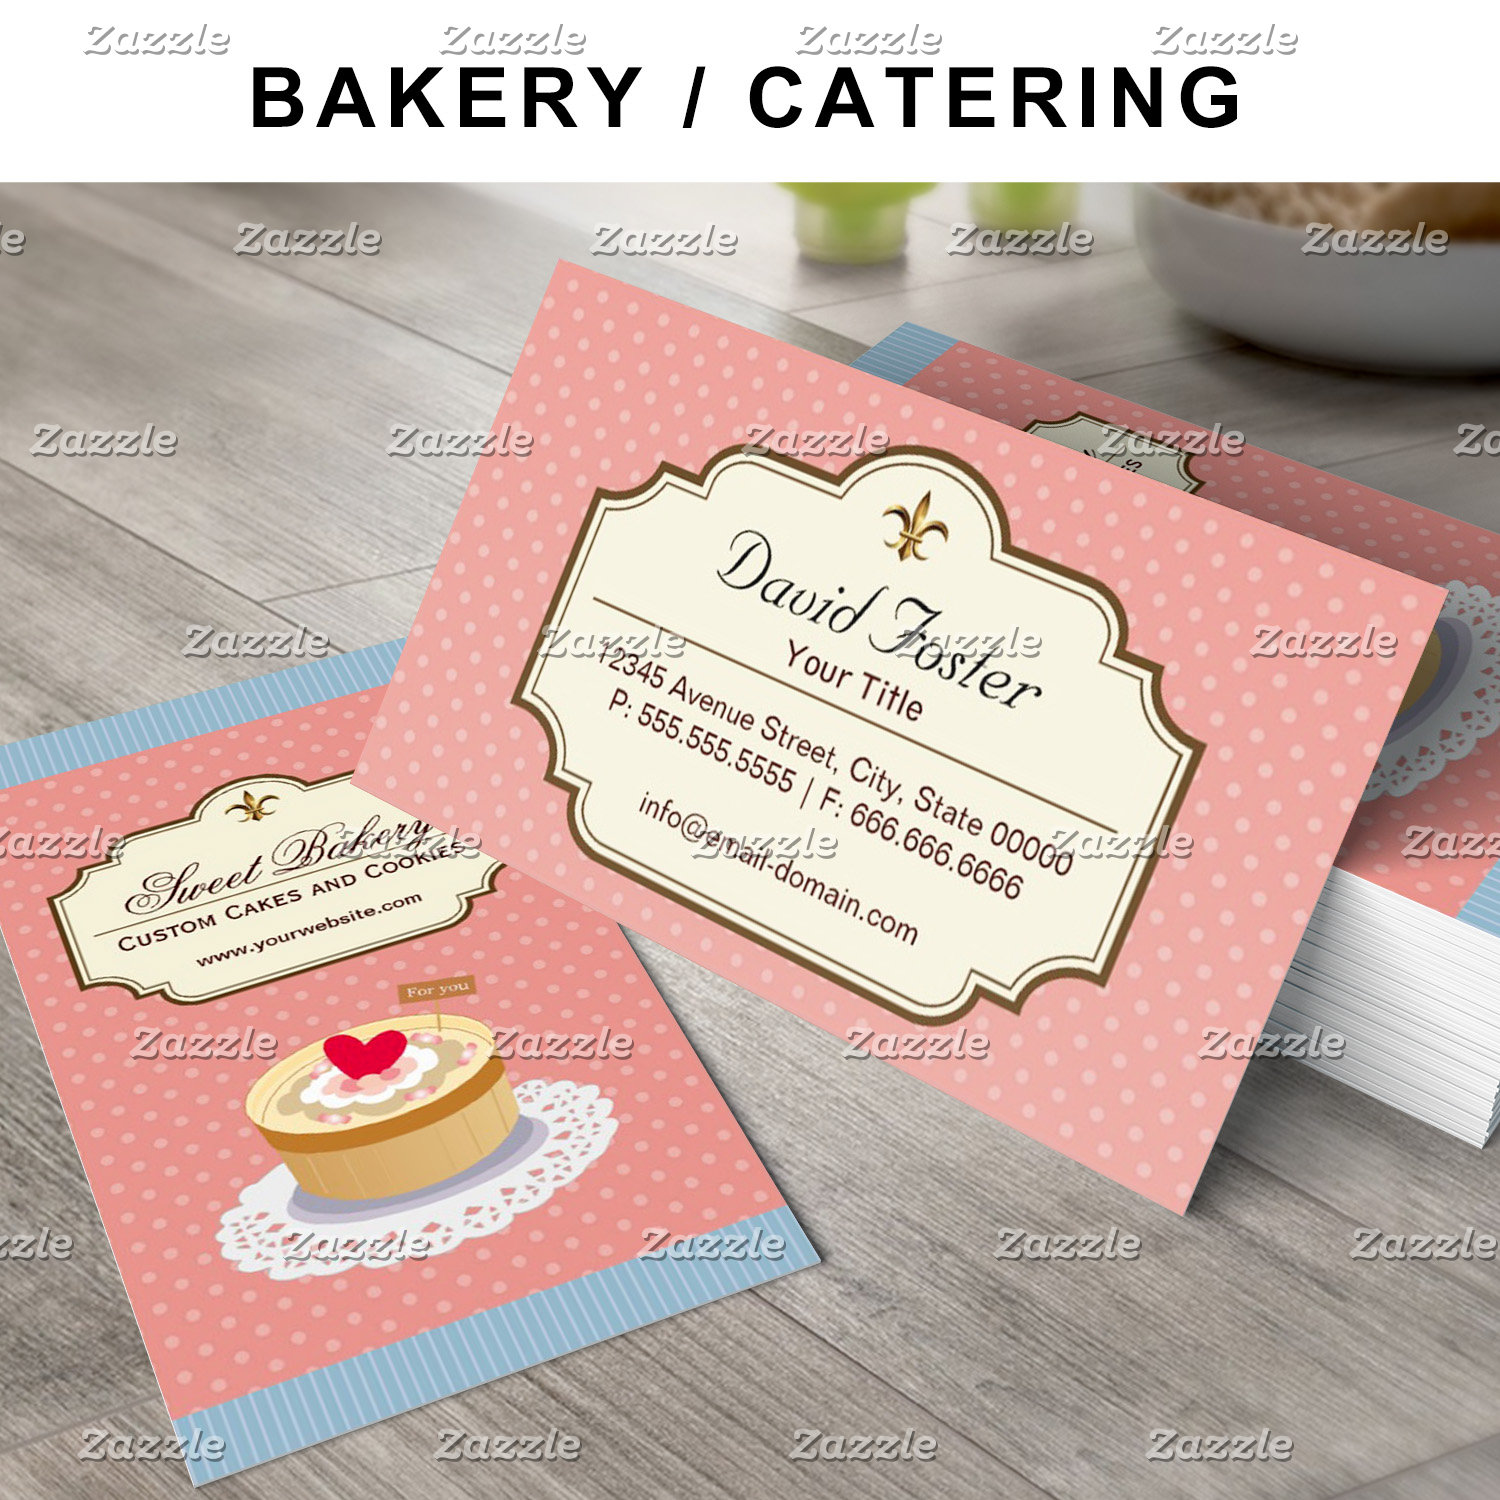 - Bakery / Catering -